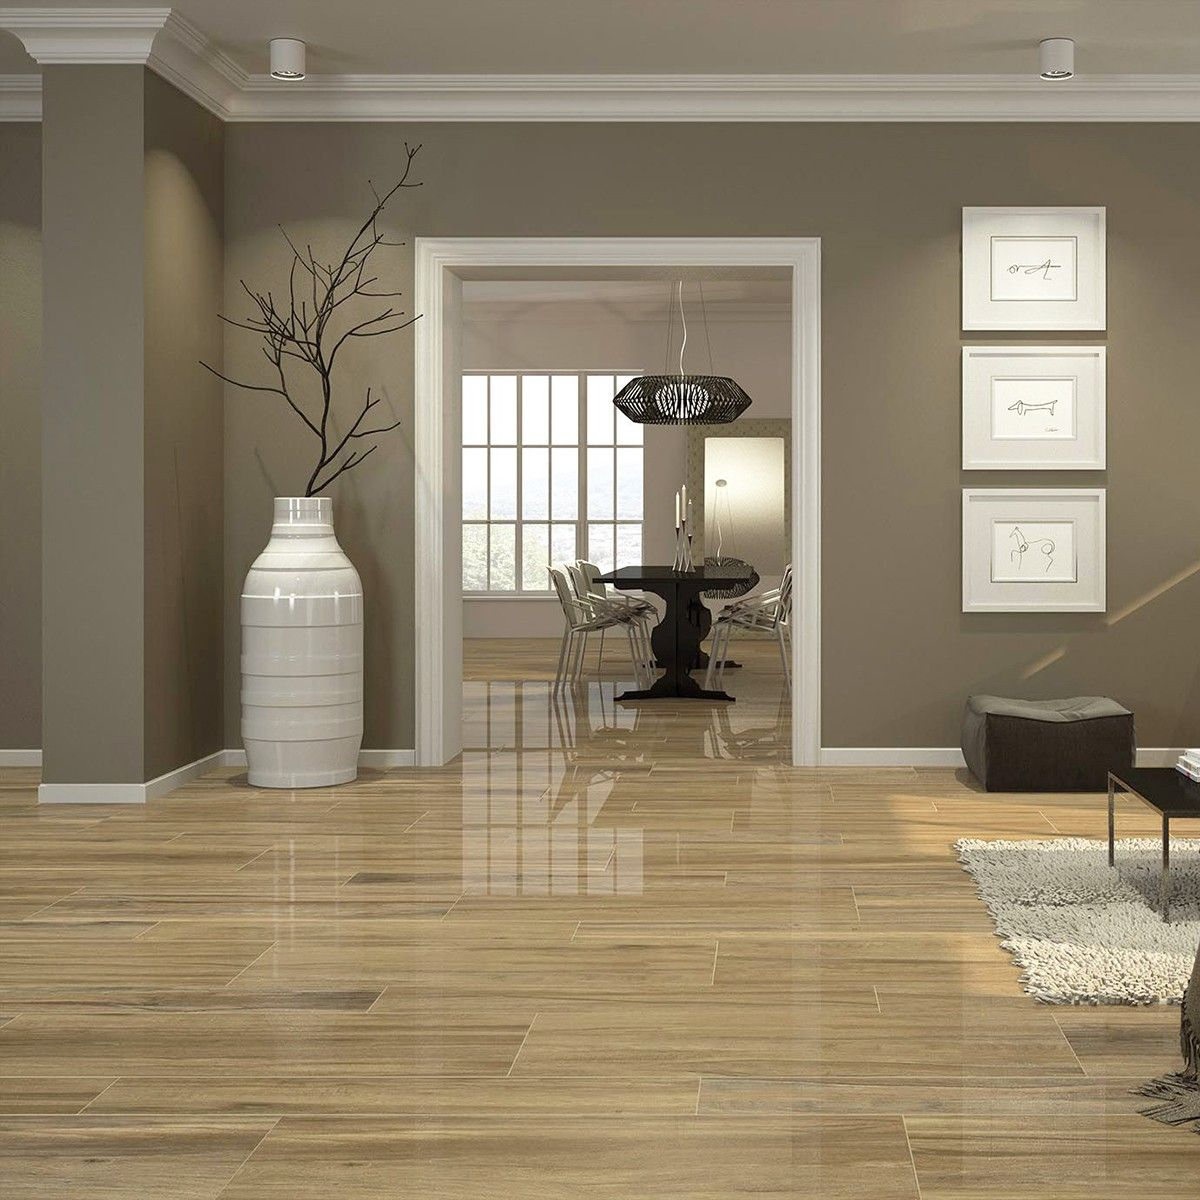 Crown tiles 120x20 hilton pine wood effect tiles wood effect hilton pine is a stunning gloss wood effect floor tile that is also available in various other colours view the range online now doublecrazyfo Image collections